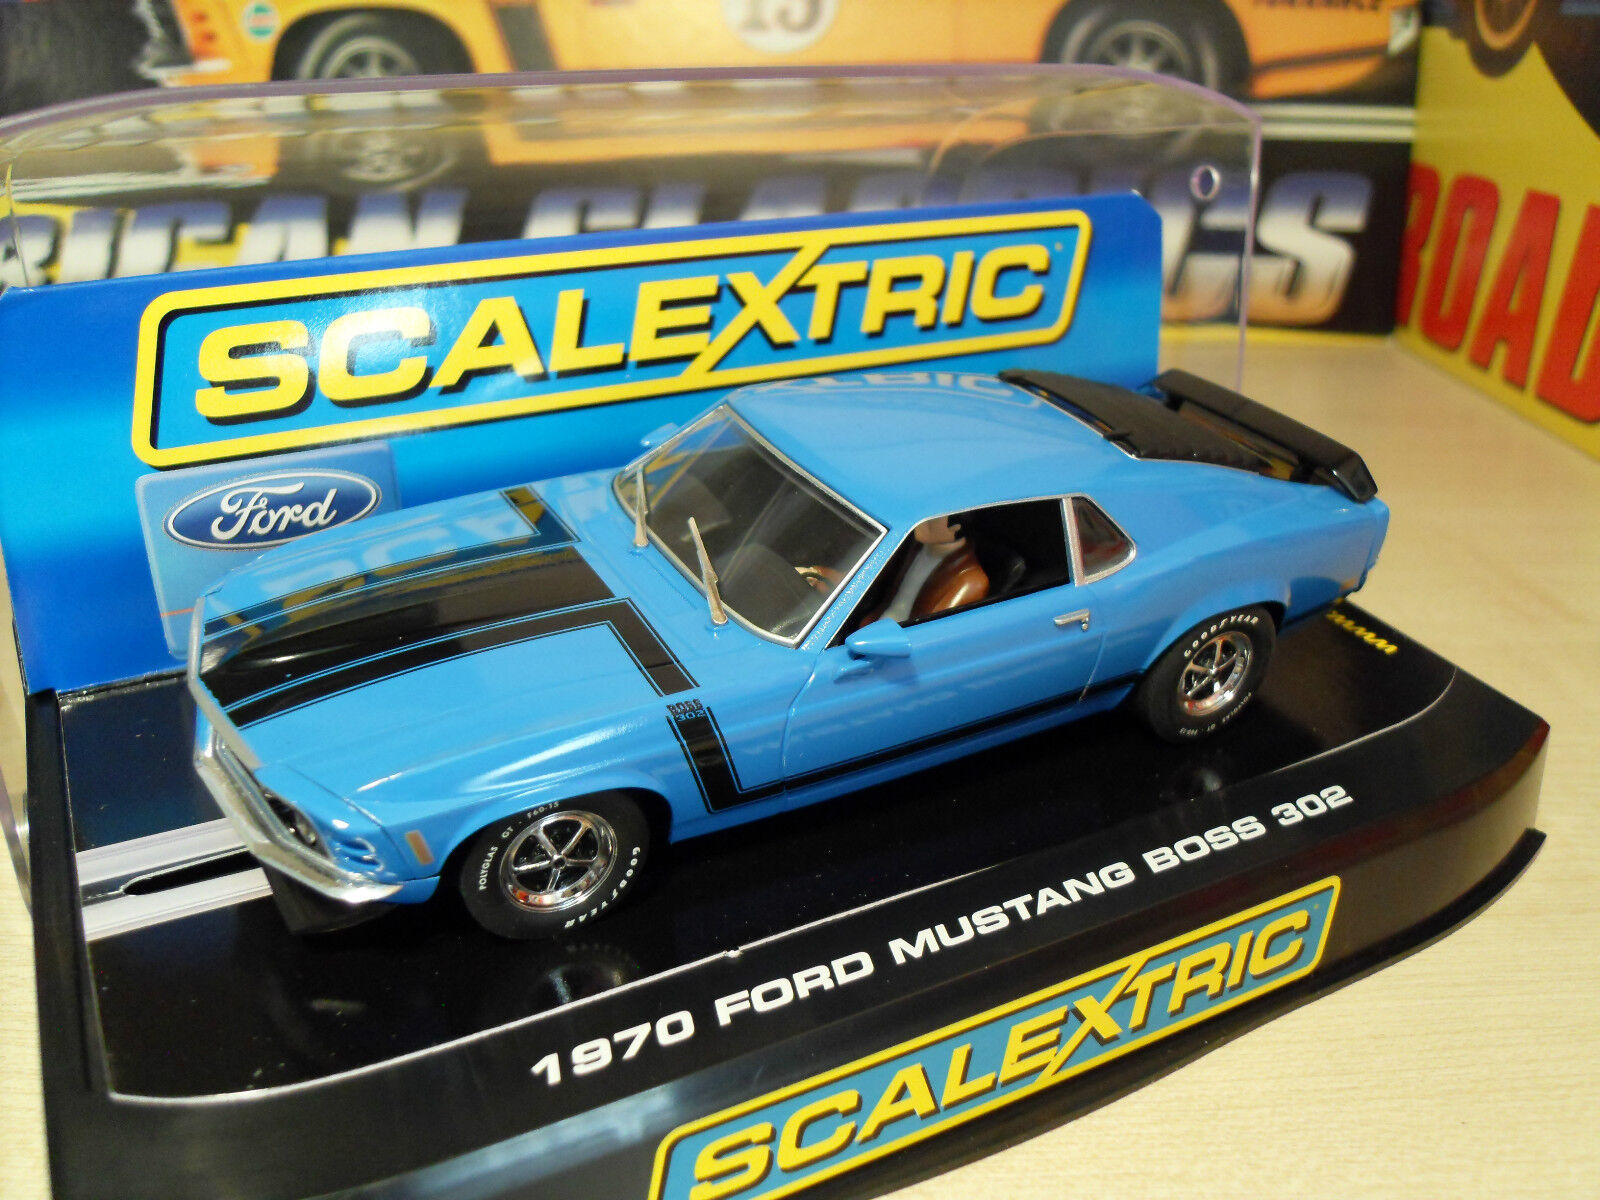 Scalextric C2976 Ford Mustang Boss 302 - Brand New in Box